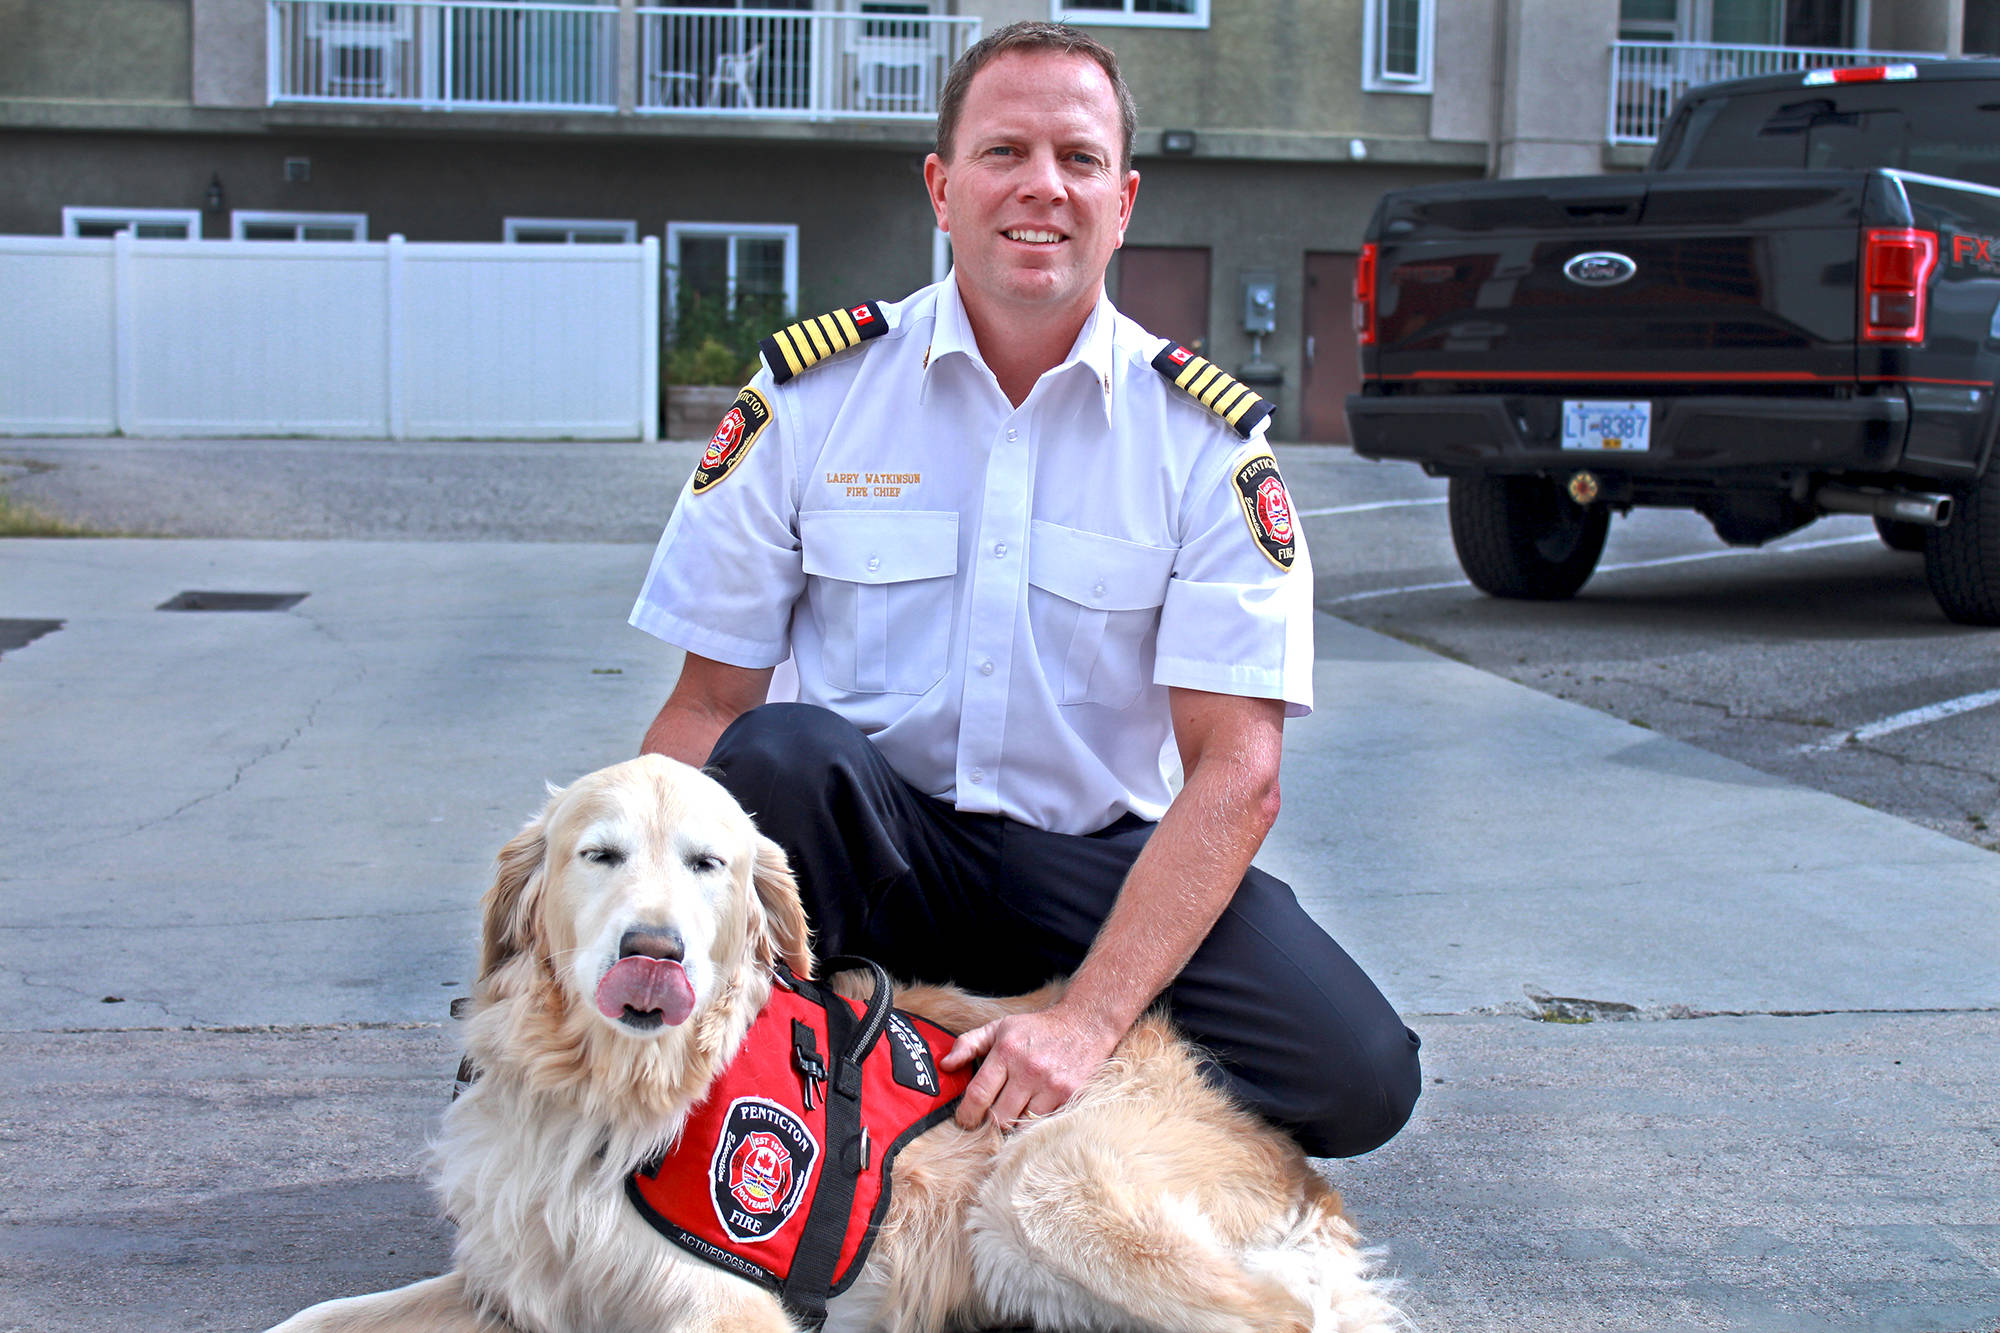 Penticton Fire Chief Larry Watkinson and his adorable sidekick, Sam the disaster dog, have returned home after roughly a week assisting in search and rescue efforts in the Bahamas, which were recently decimated by Hurricane Dorian. (Jordyn Thomson - Western News)